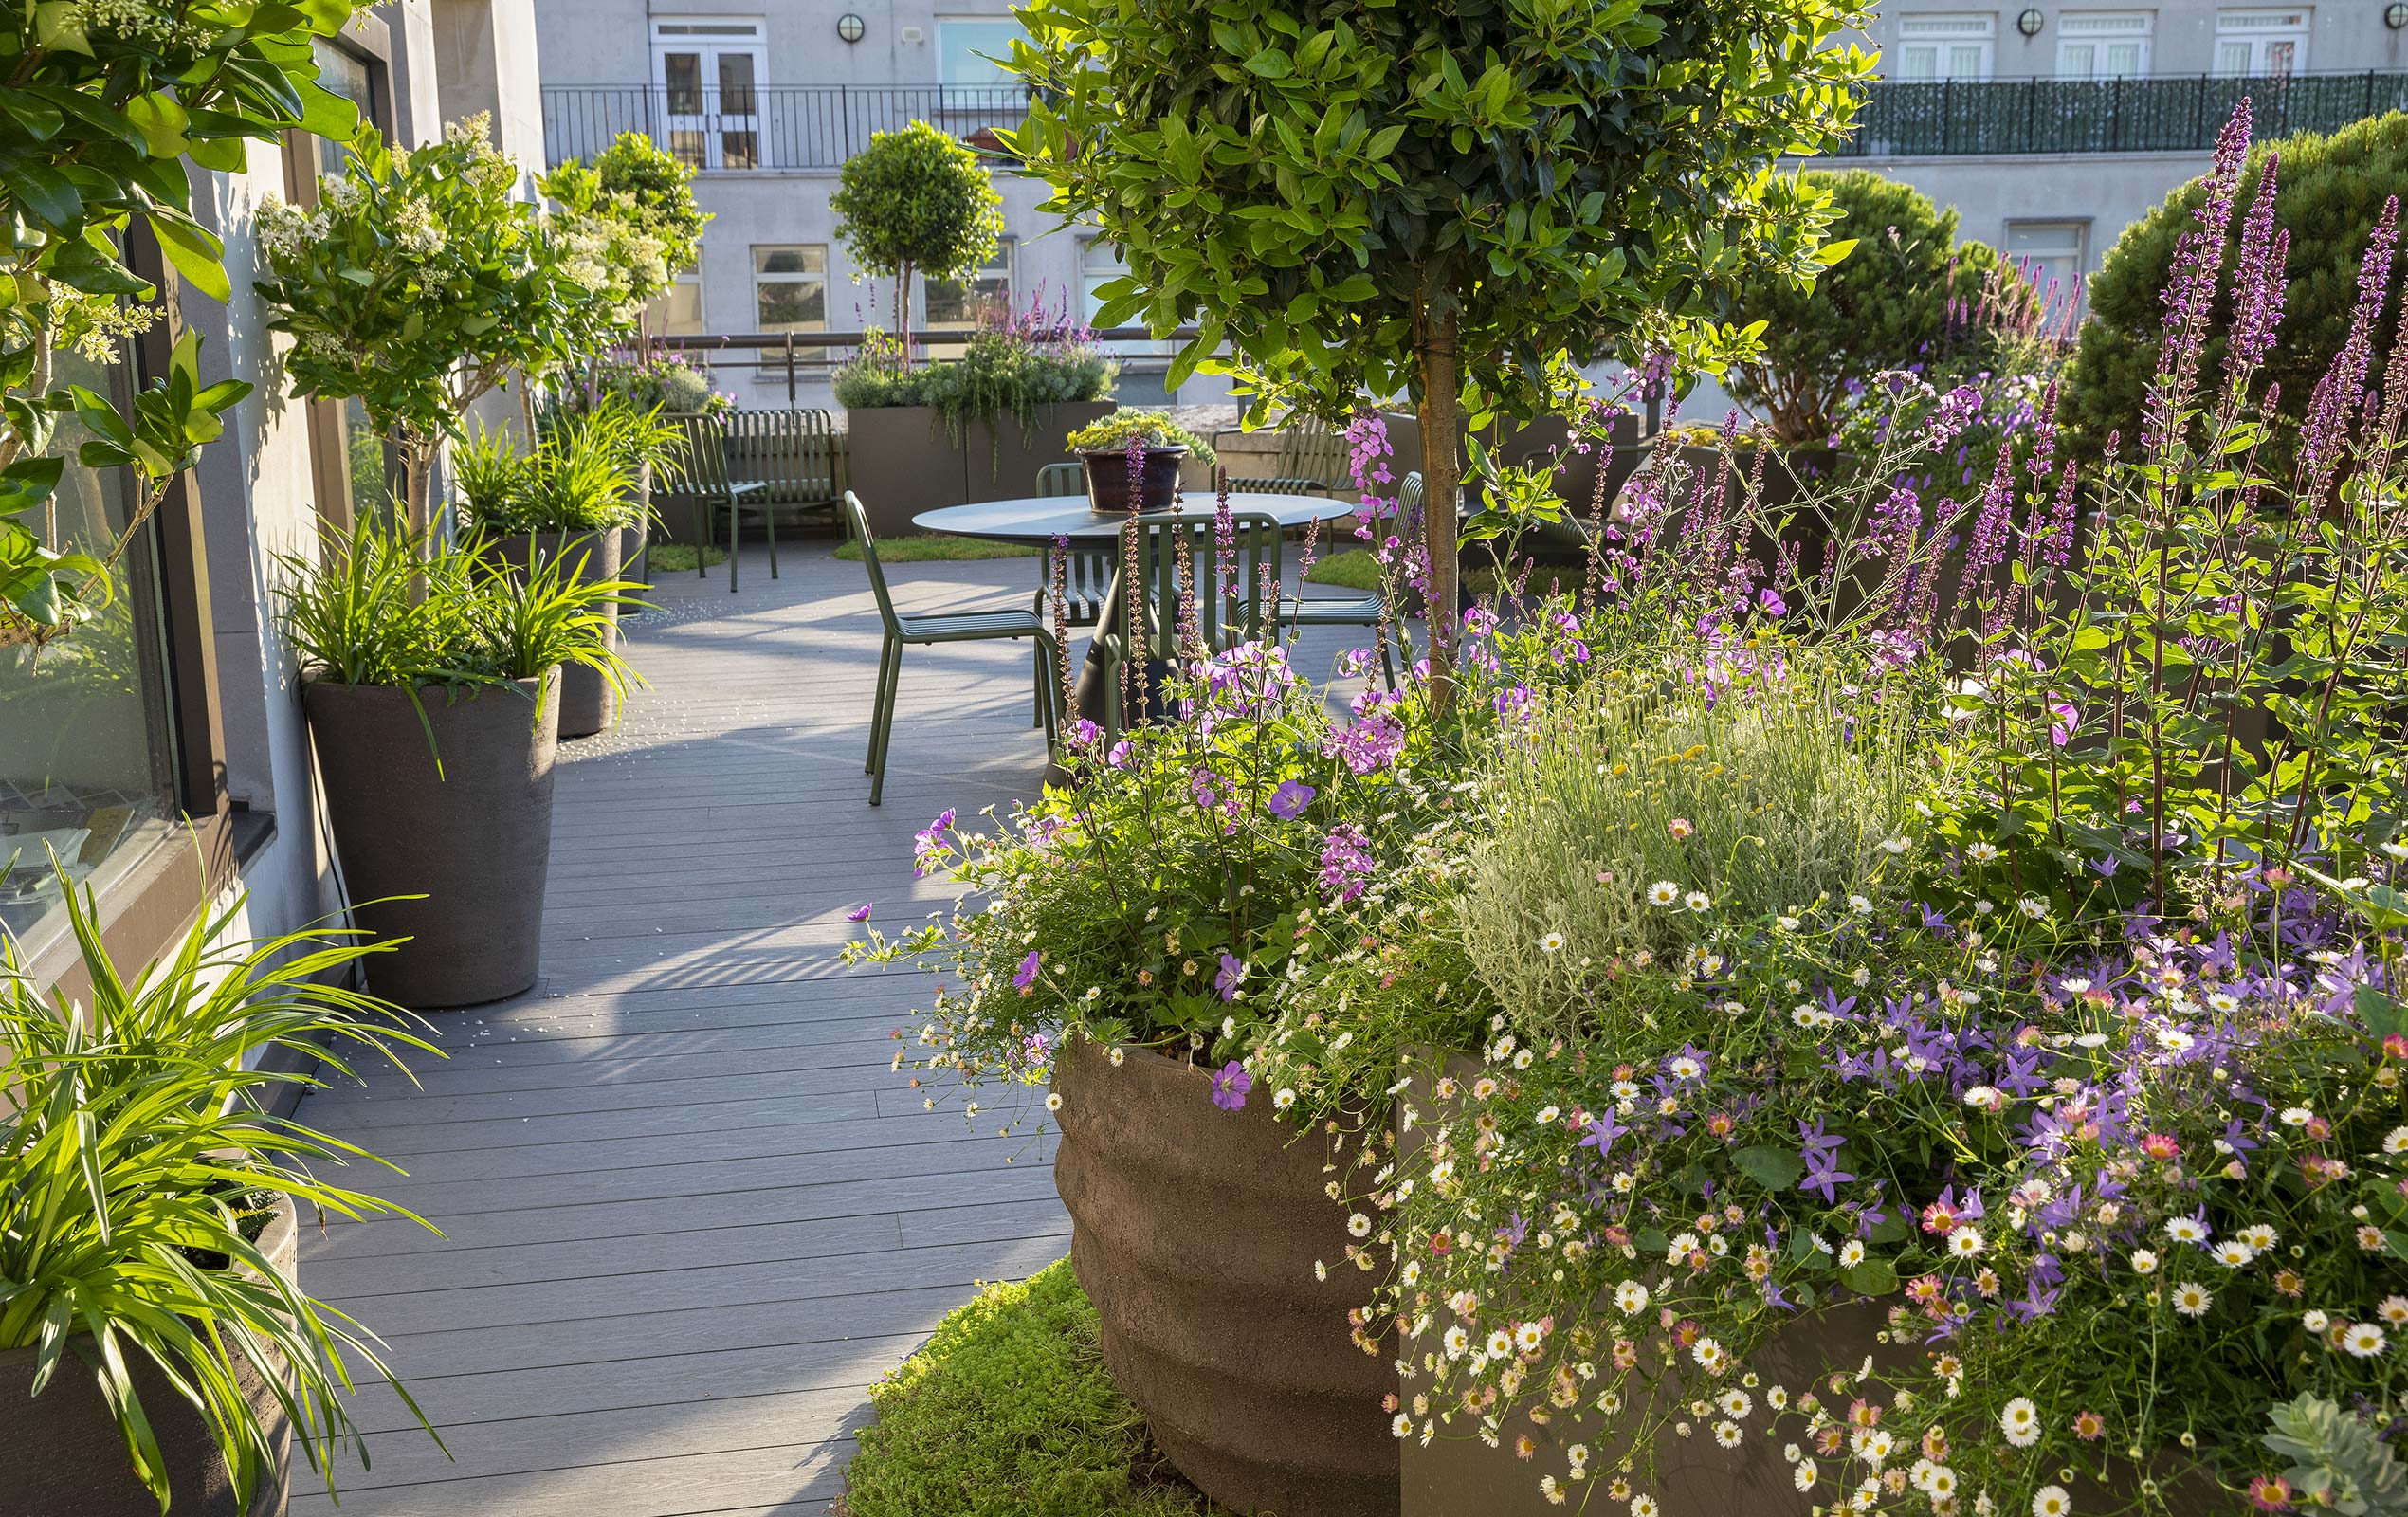 Mayfair Roof Terrace Design by Maïtanne Hunt